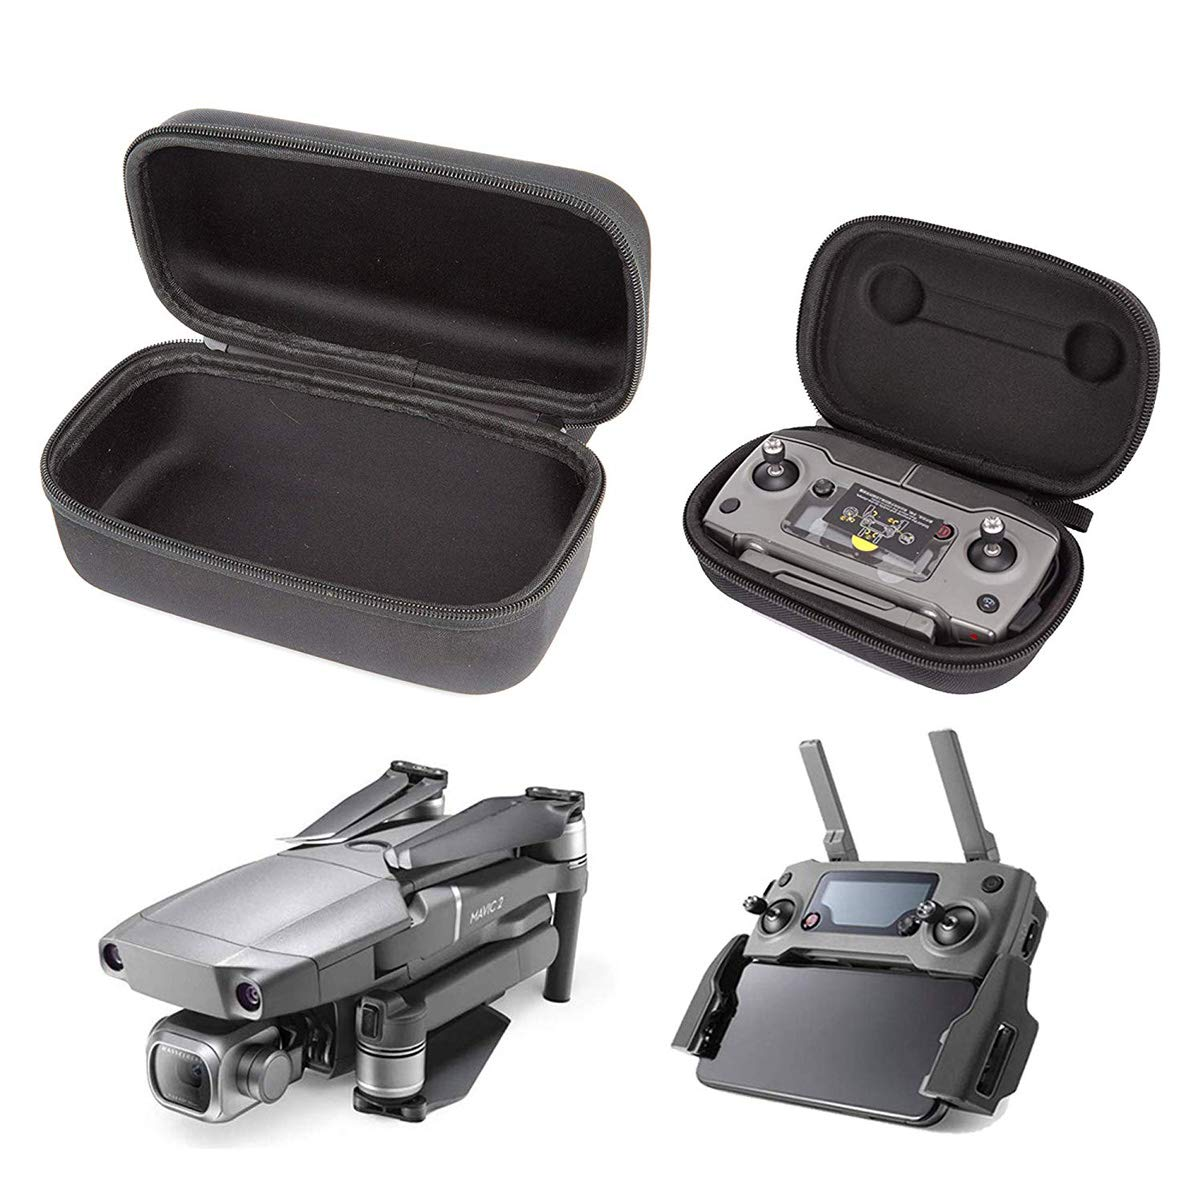 Carrying Case for DJI Mavic 2 Pro, Zoom, Foldable Drone Body and Remote Controller Transmitter Bag Accessory